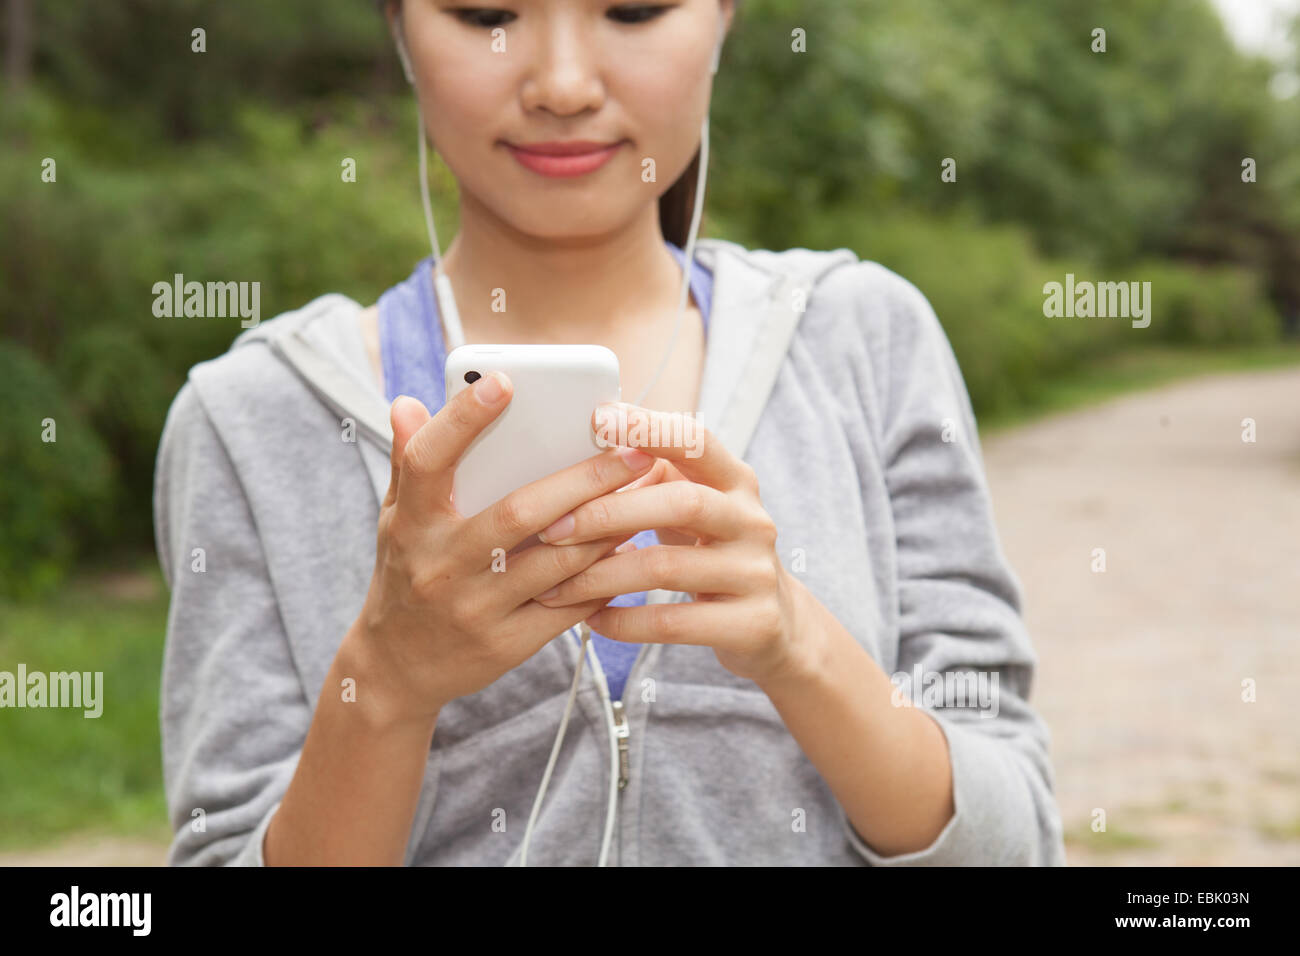 Close up of young female runner selecting music from smartphone in park - Stock Image